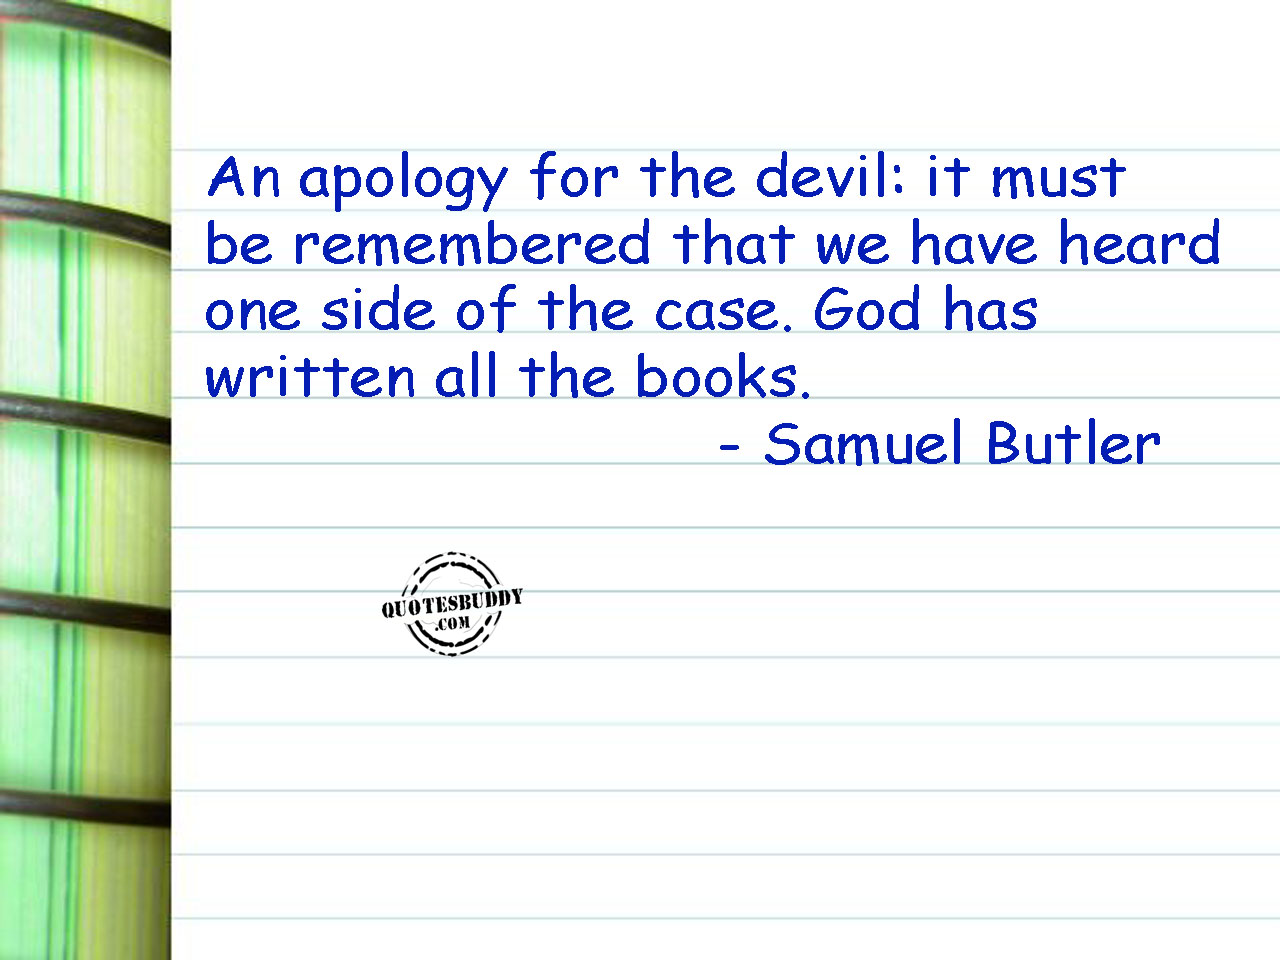 An Apology For The Devil, It Must Be Remembered That We Have Heard One Side Of The Case. God Has Written All The Books ~ Apology Quote